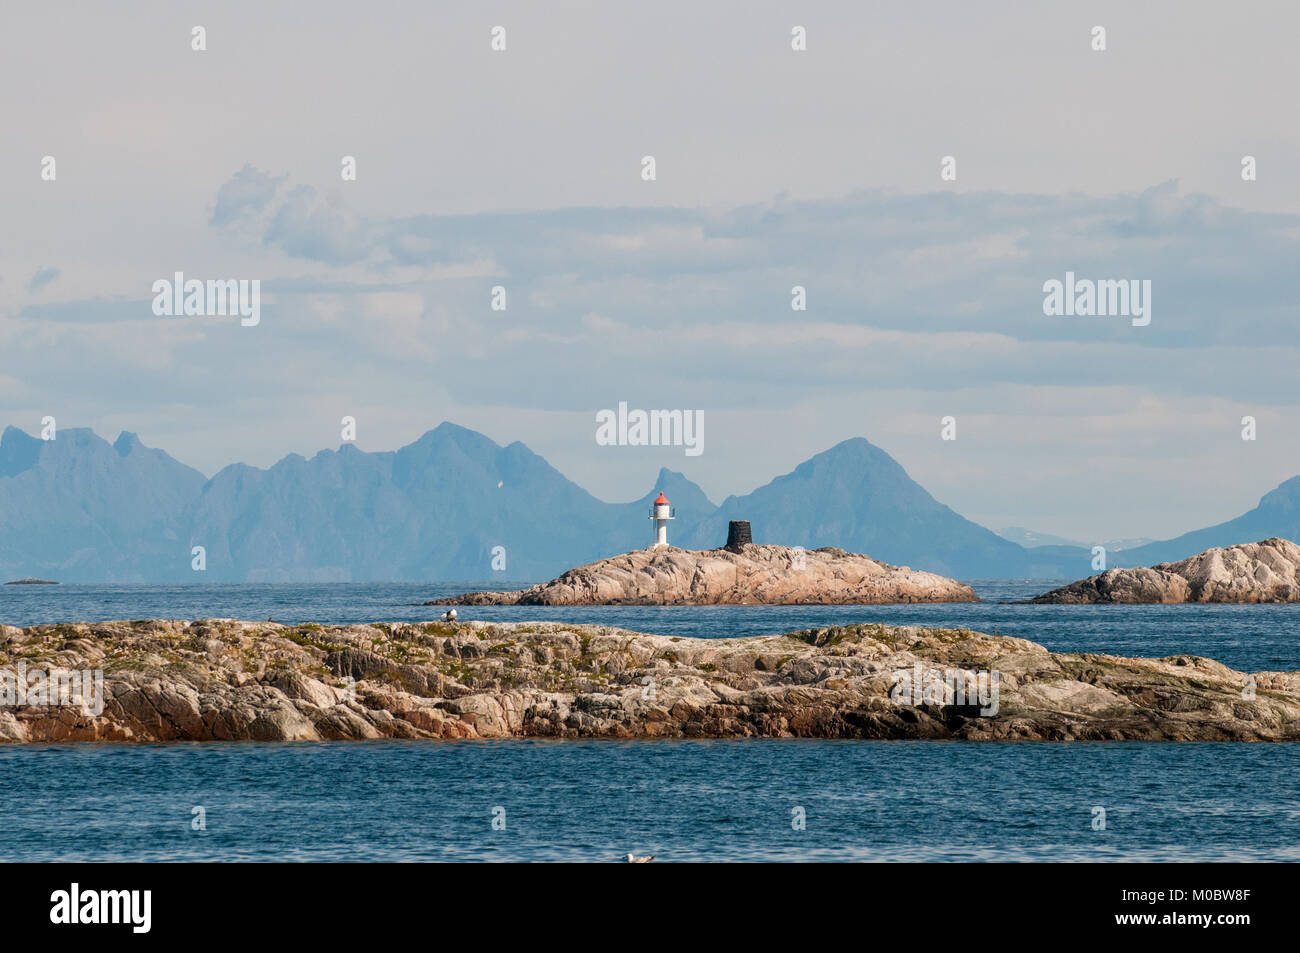 Coast landscape at Henningsvaer on Lofoten islands in northern Norway. - Stock Image